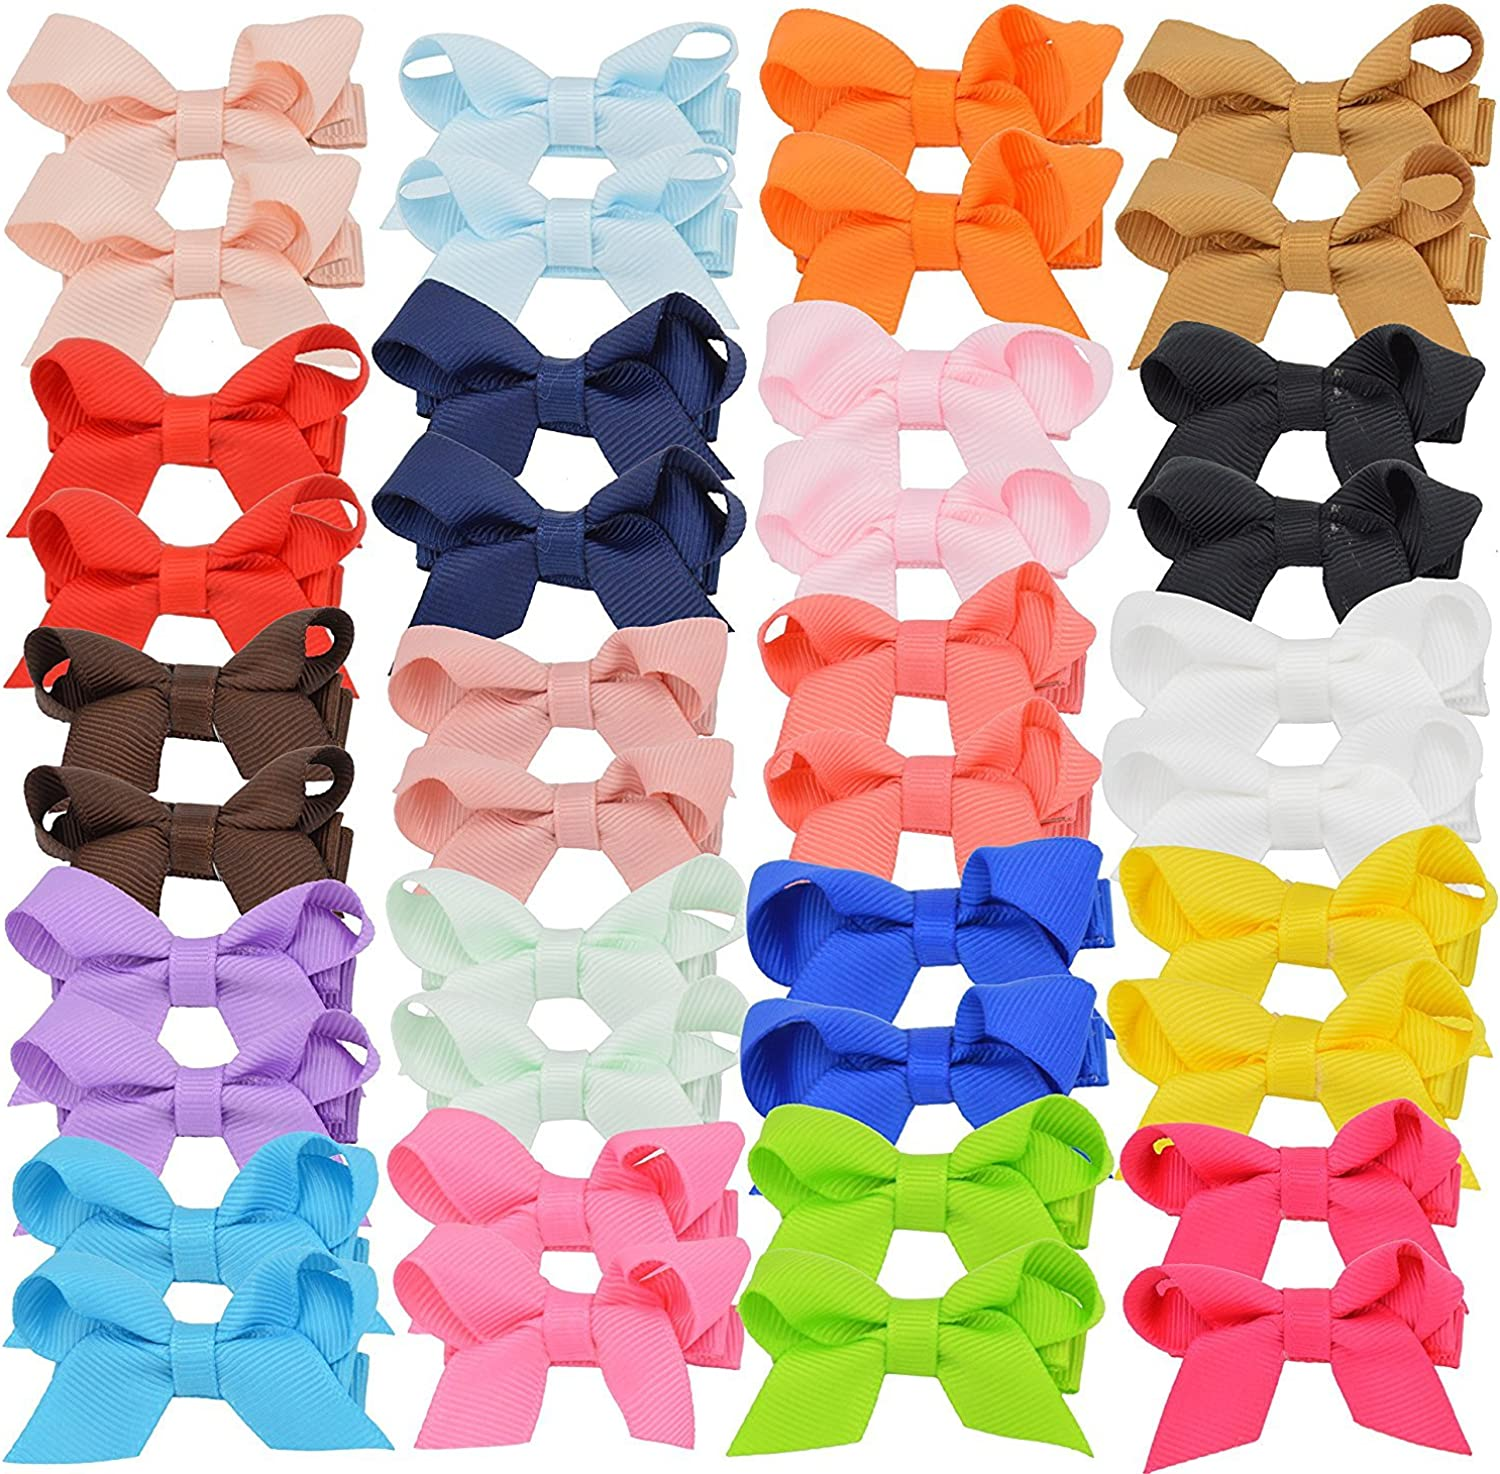 20 Pairs Tiny Grosgrain Ribbon Hair Superior for Deluxe Barrettes Baby Bow Clips